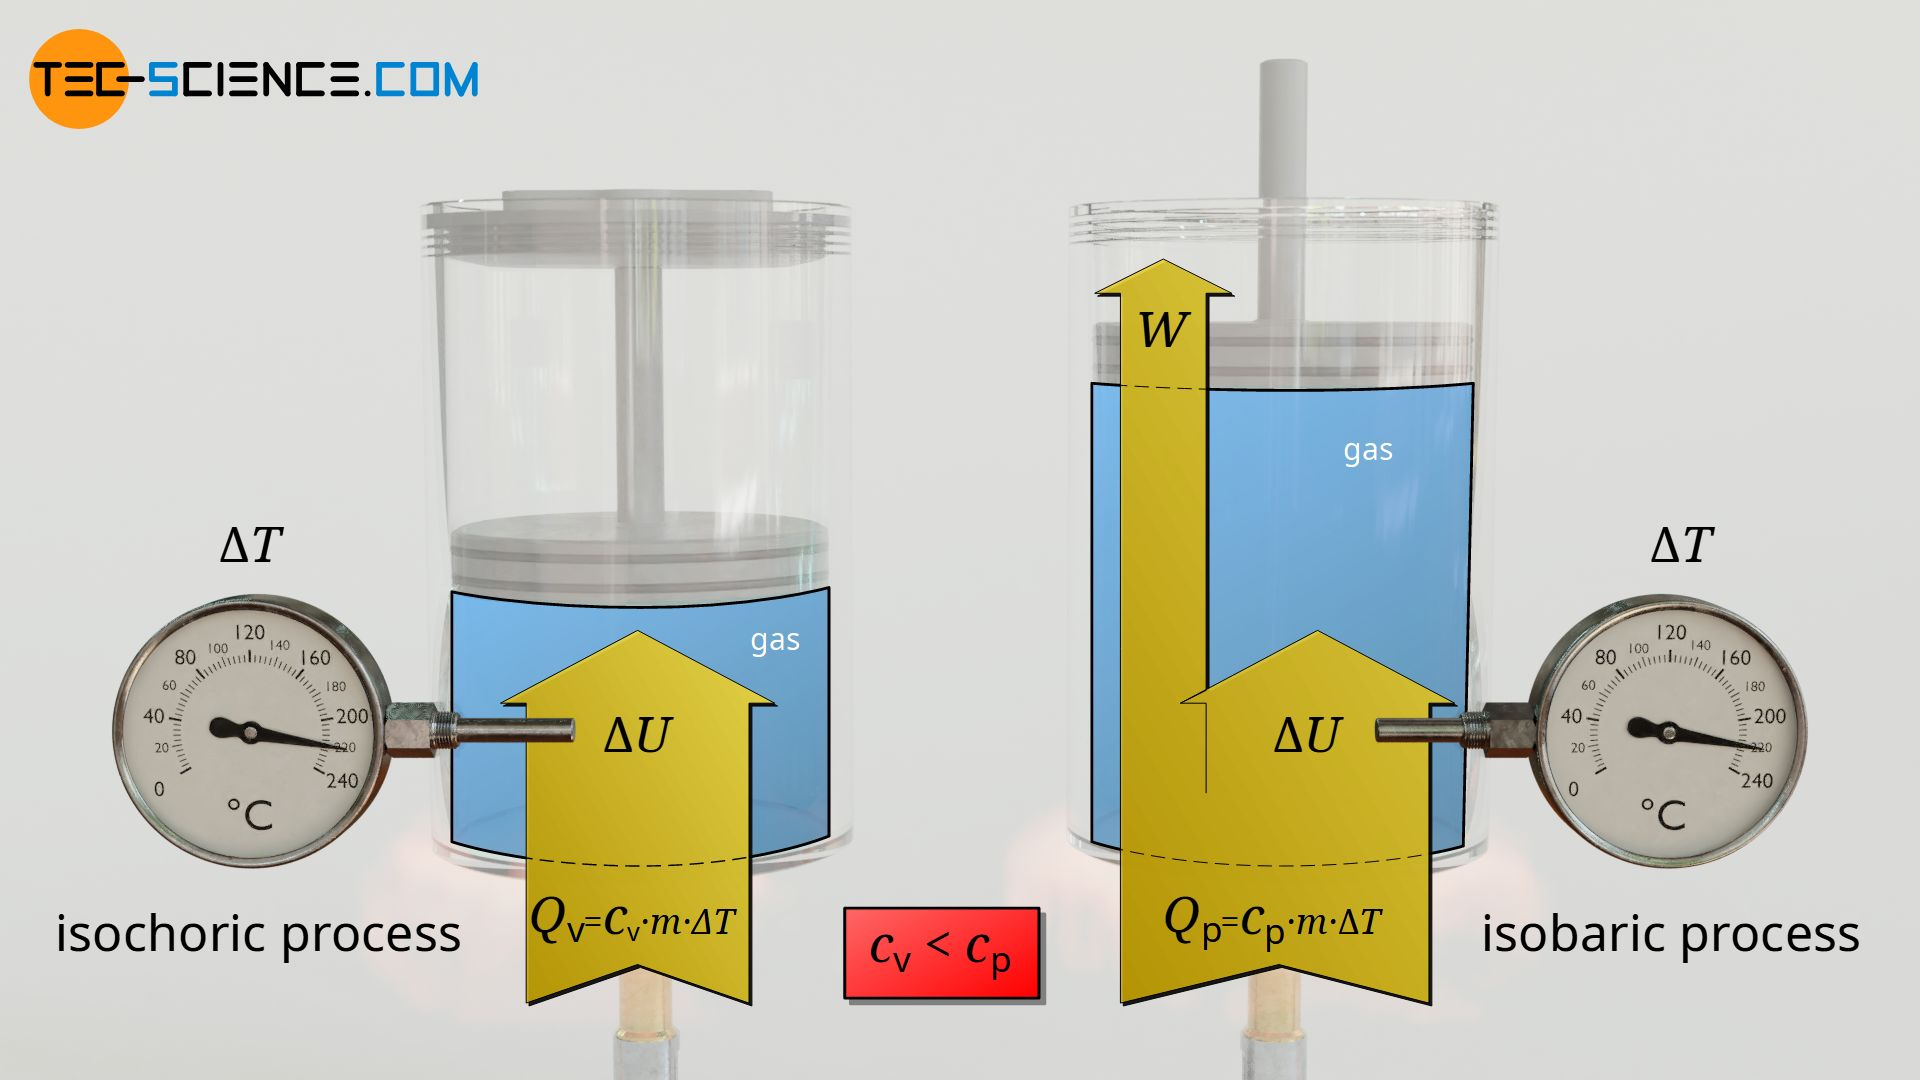 Comparison of the specific heat capacity in an isochoric process and an isobaric process